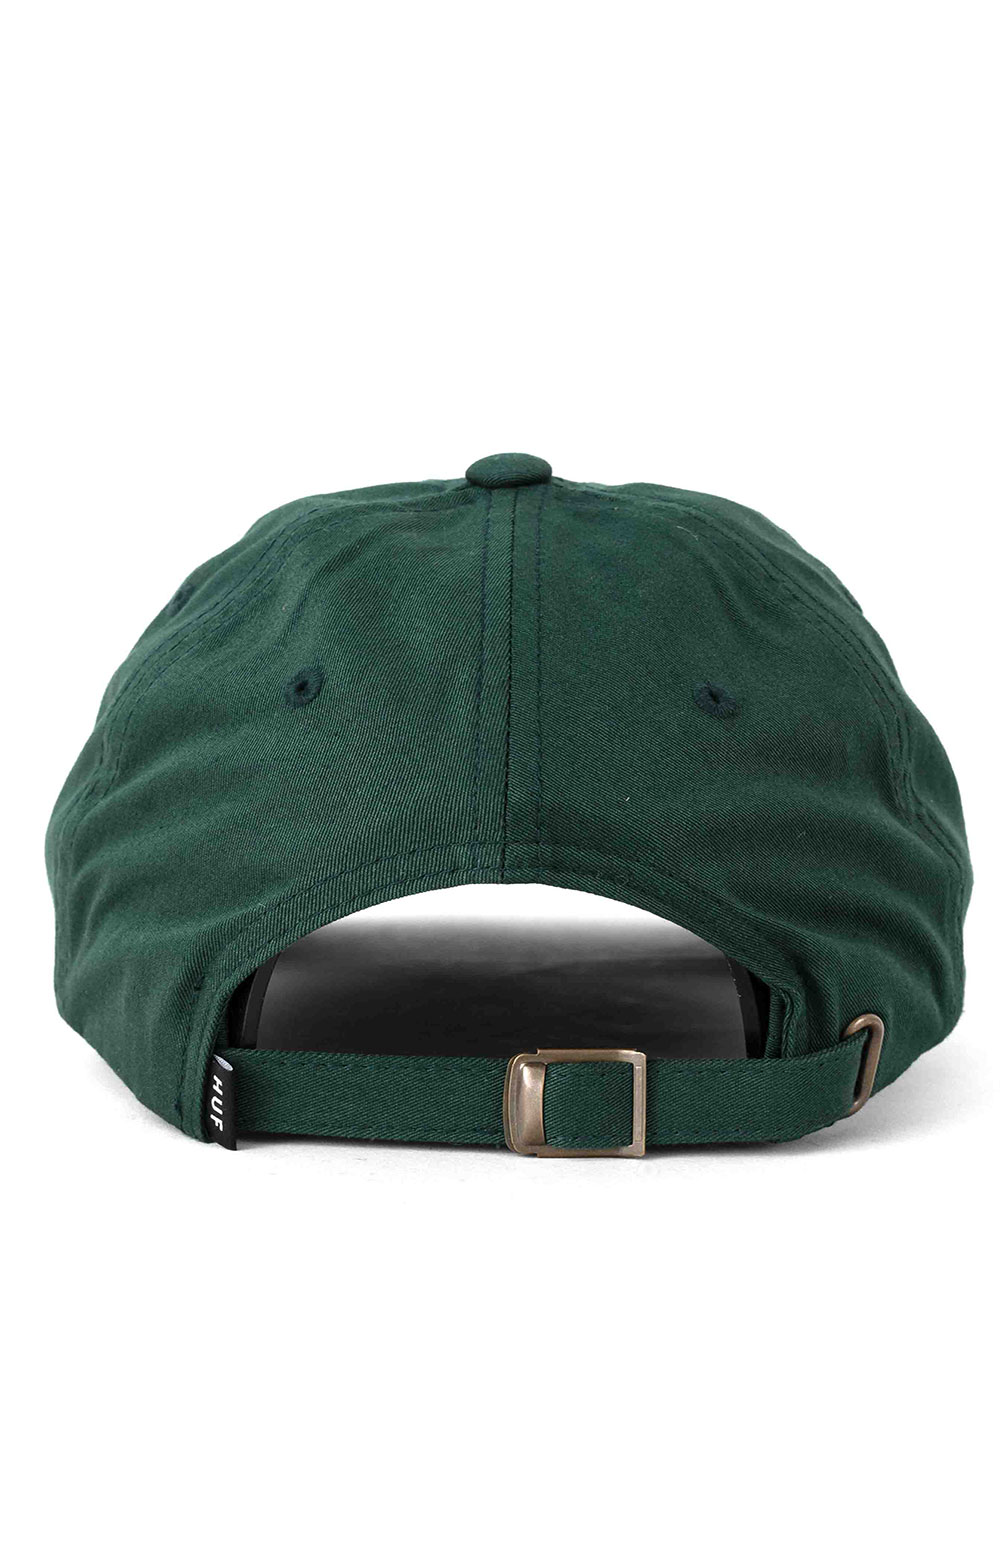 Essentials OG Logo Curved Visor Hat - Sycamore  3